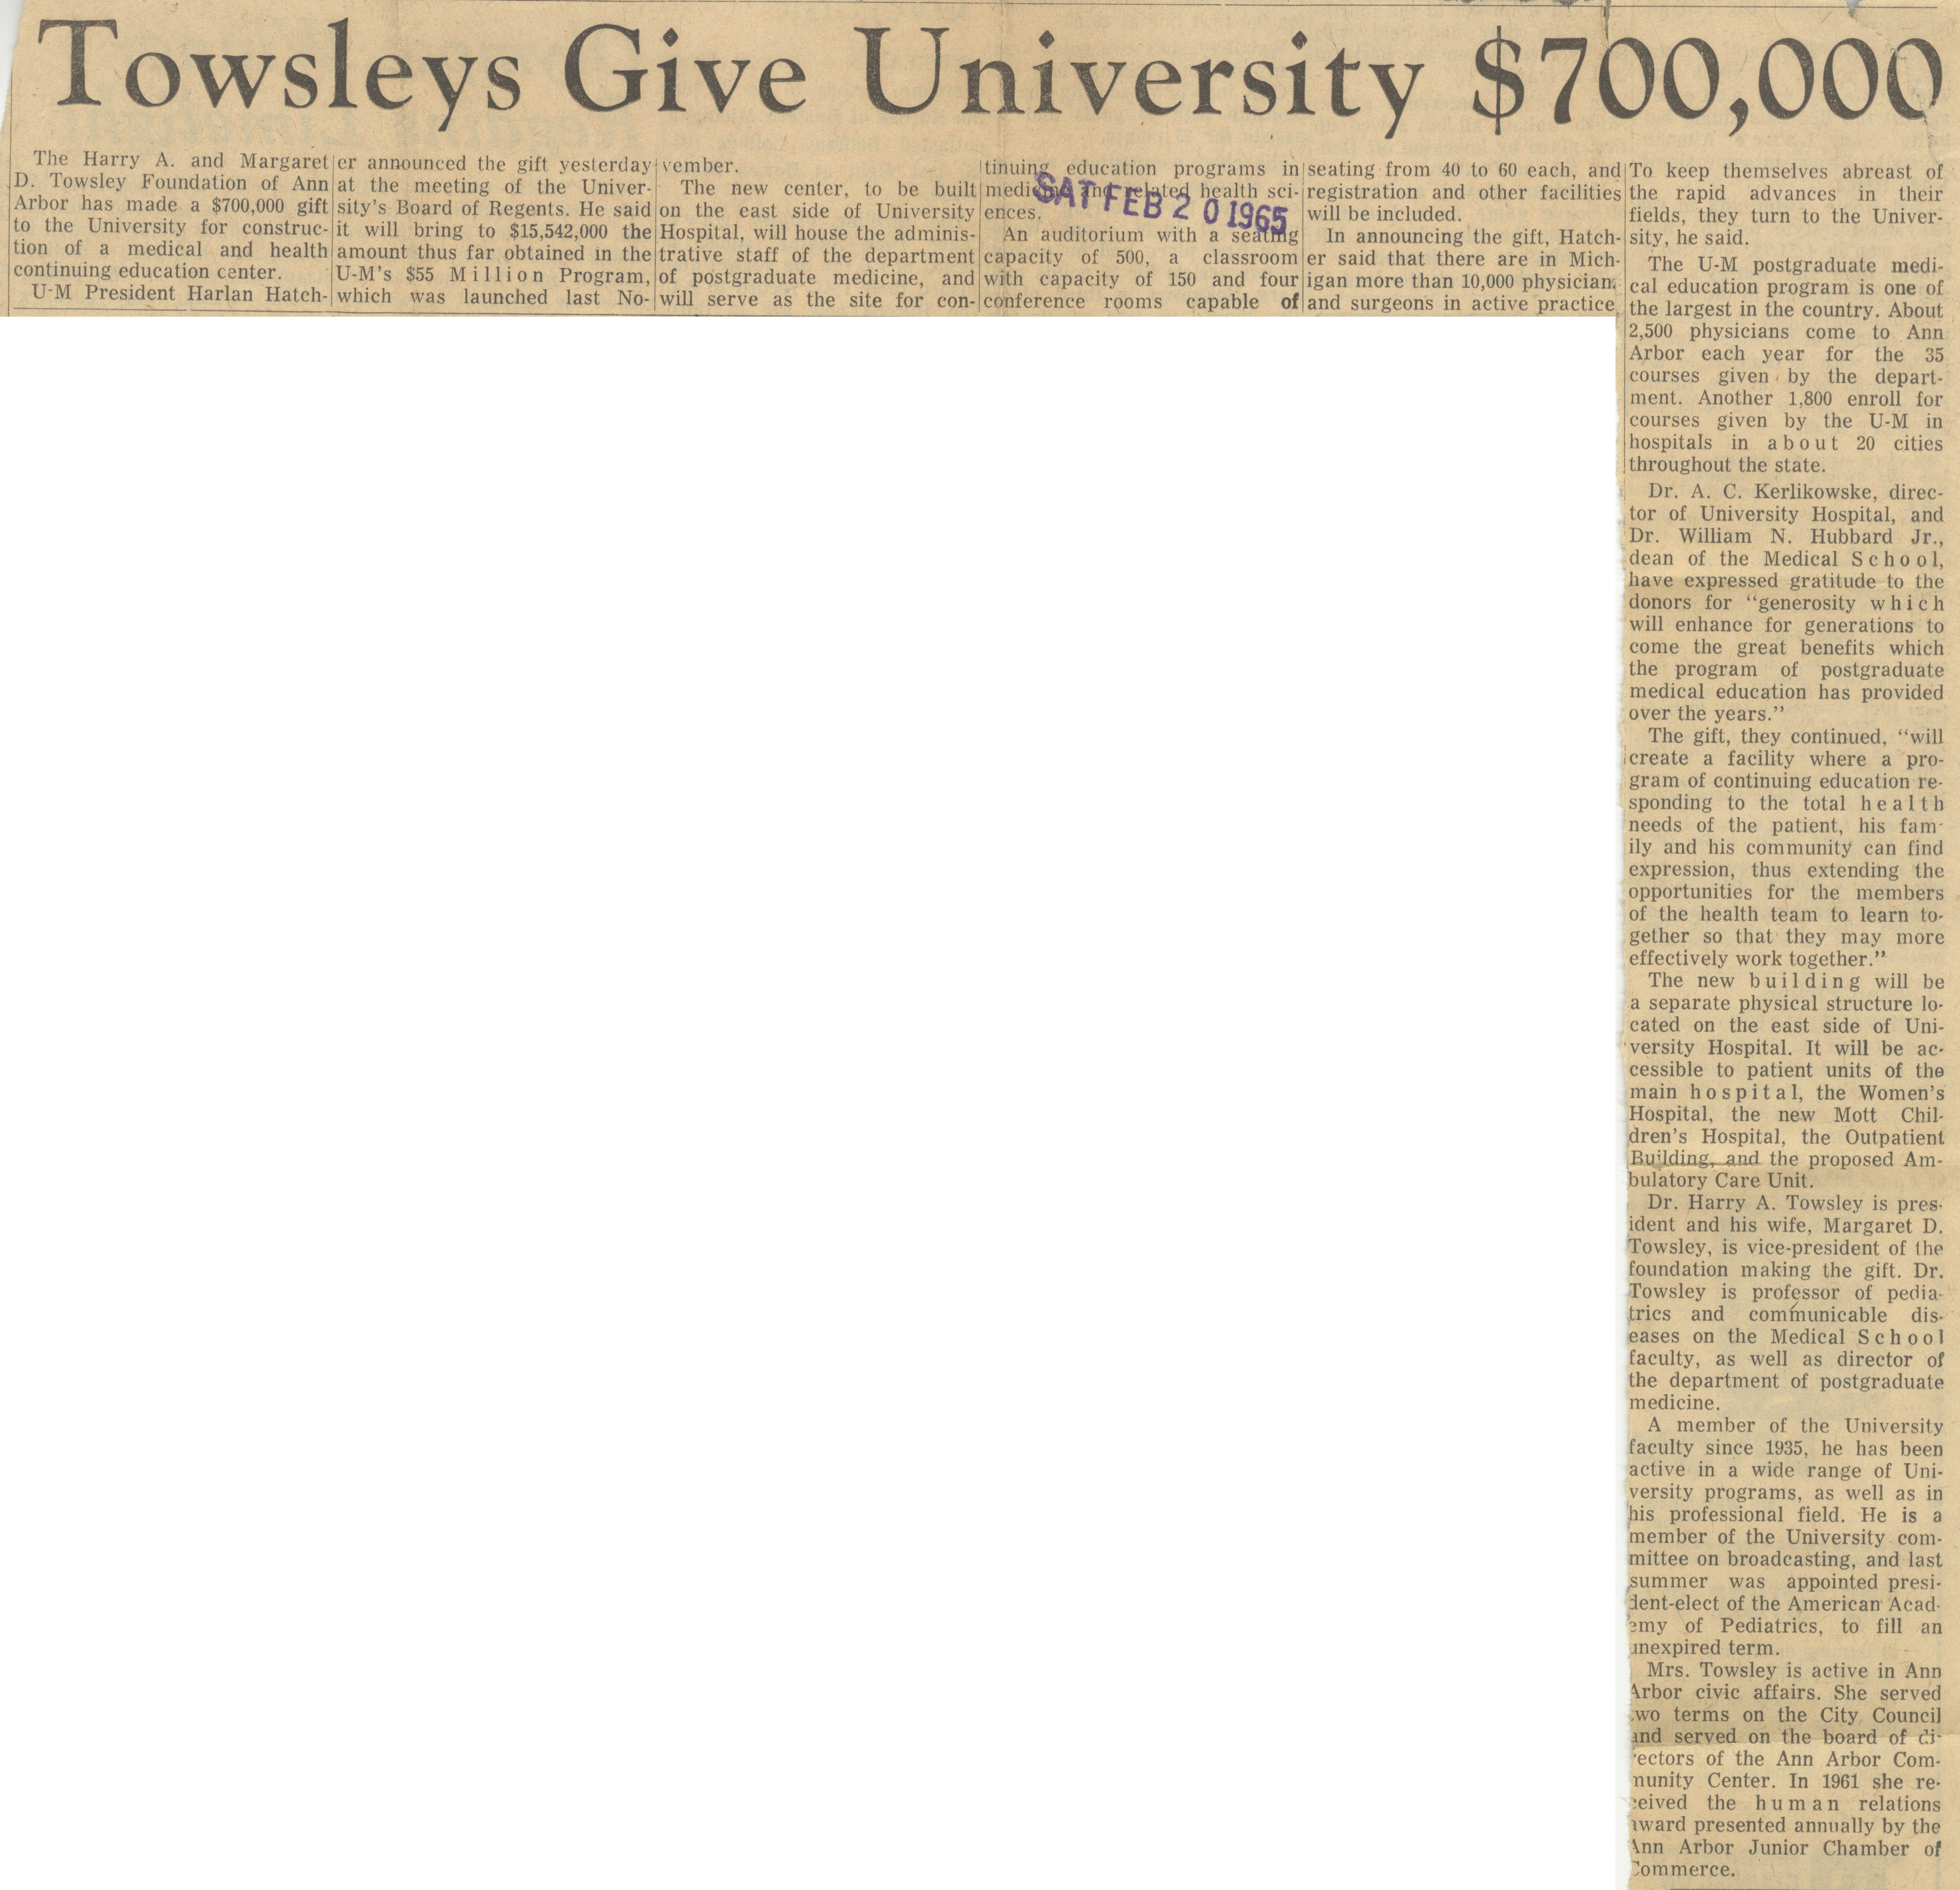 Towsleys Give University $700,000 image